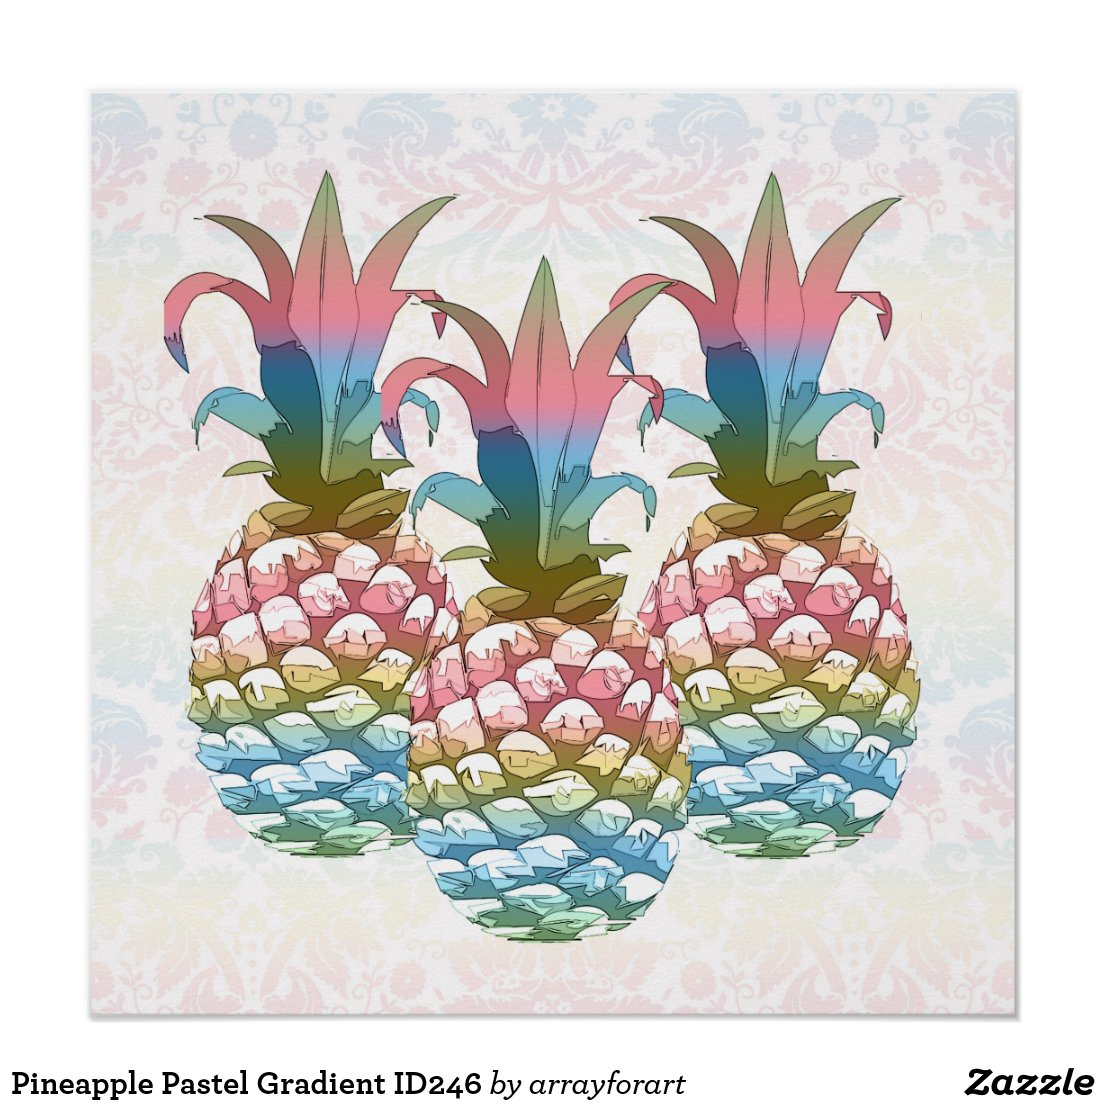 Pineapple Pastel Gradient ID246 Poster